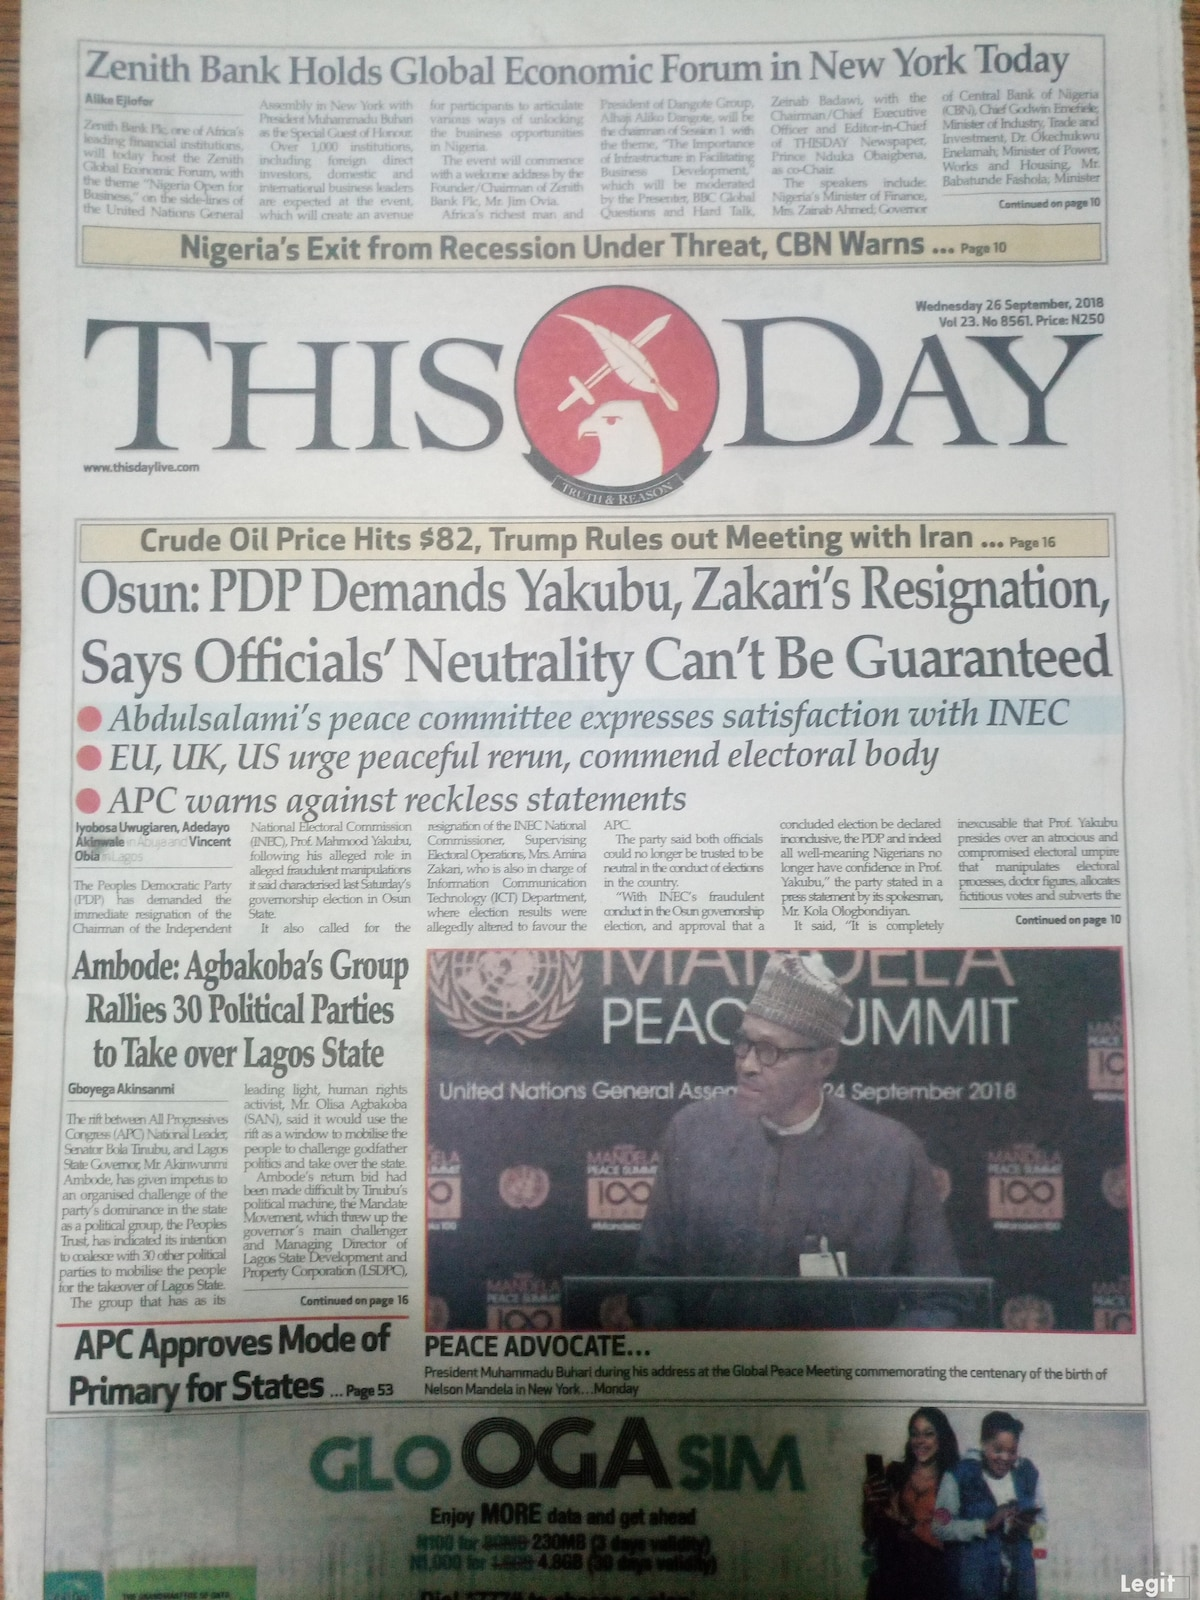 This Day newspaper for Wednesday, September 26.Photo credit: Snapshot from Legit.ng.